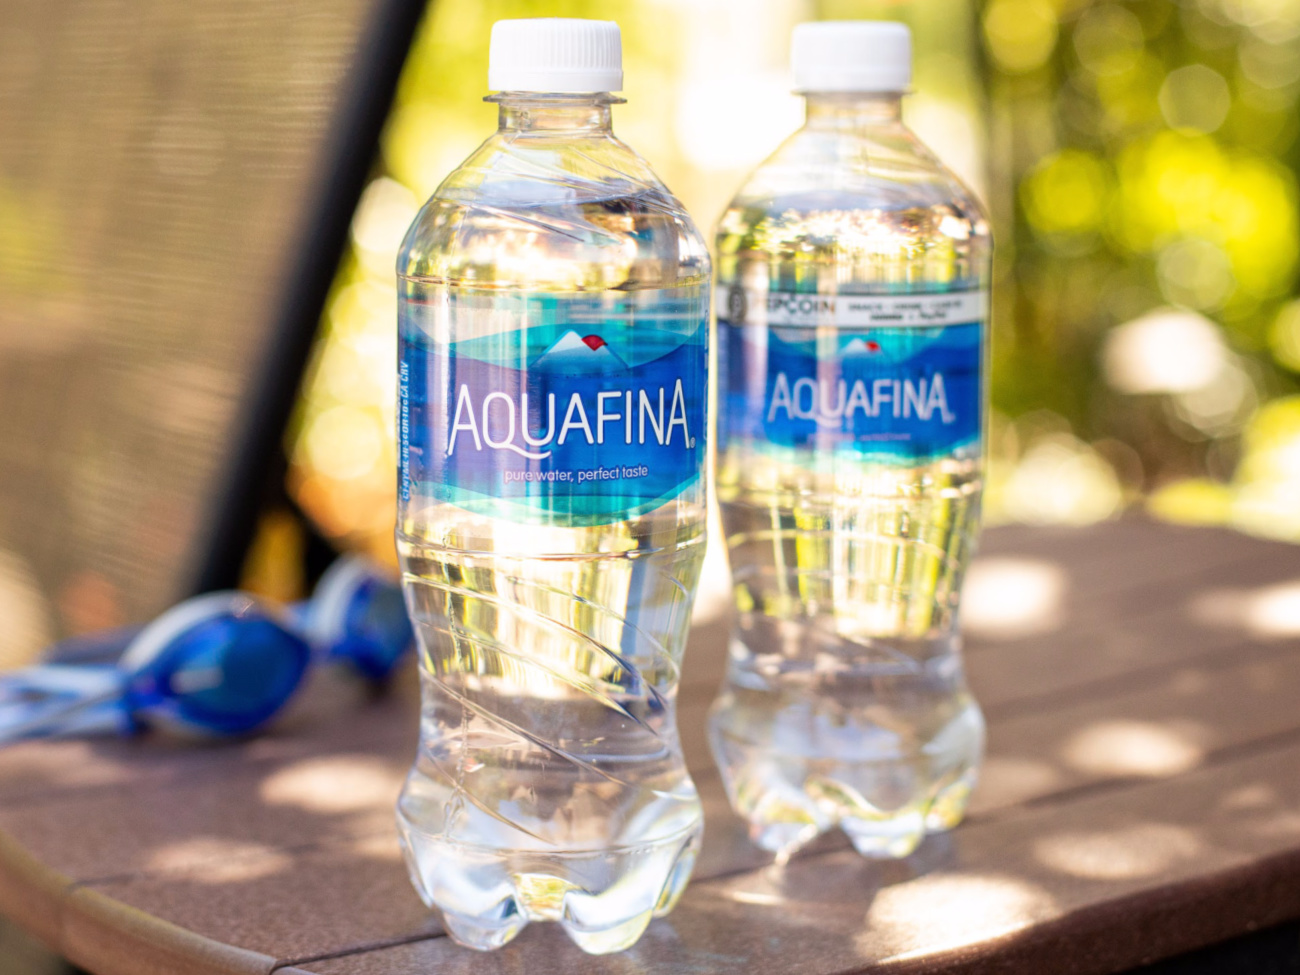 20 Ounce Bottles of Aquafina Water Just $1 After Coupon At Publix on I Heart Publix